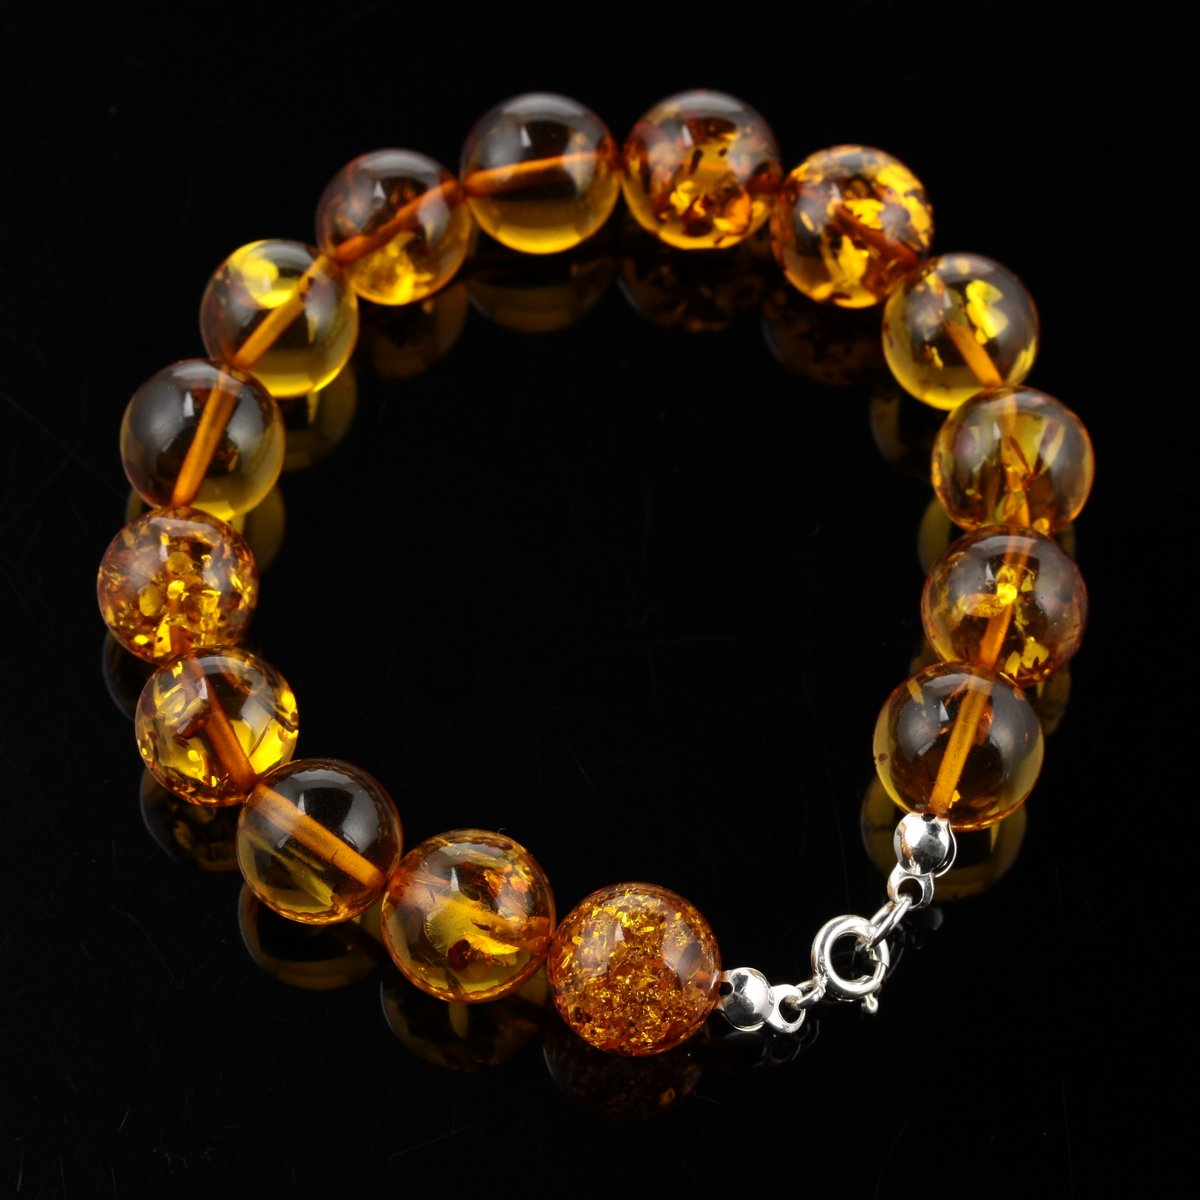 Amber bead  1 bead  Amber beads  Baltic amber  Amber stone  Bracelet bead  Amber bracelet  Round beads  Amber earring  Drilled bead